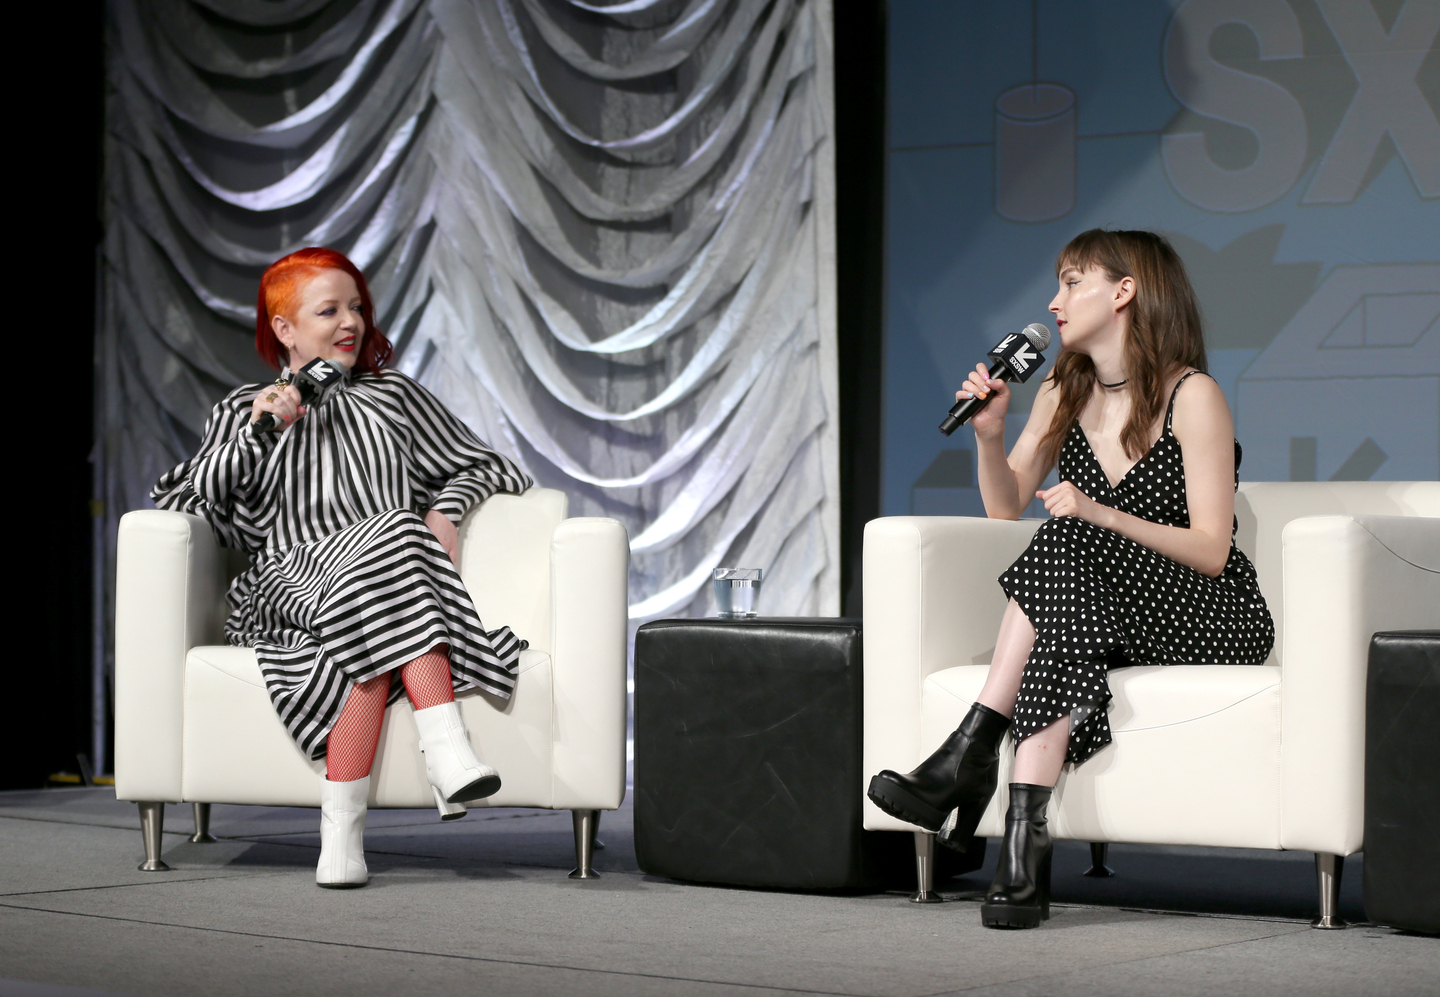 Shirley Manson of Garbage and Lauren Mayberry of Chvrches speak onstage at their Music Keynote with Puja Pate at Hilton Austin.